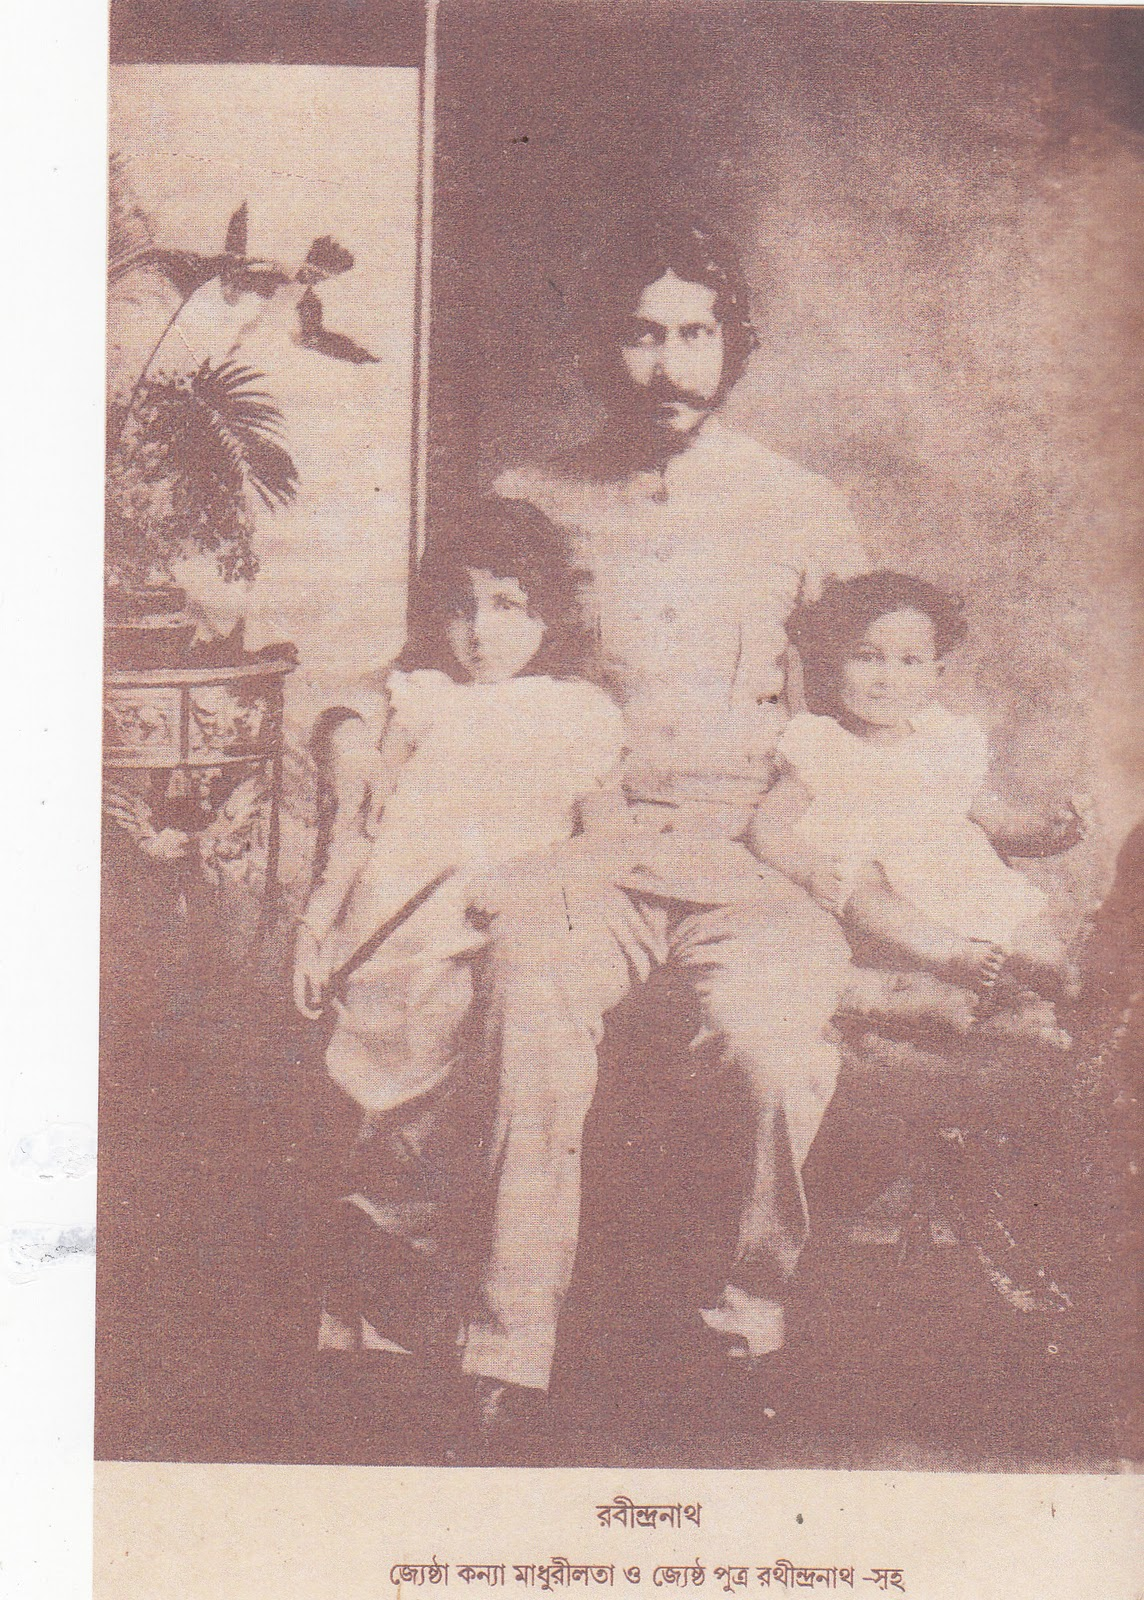 smaraka grantha 2010 on 23rd jan the second daughter d renuka or rani of rabindranath was born he an essay on civilisation of east and west he had only three months